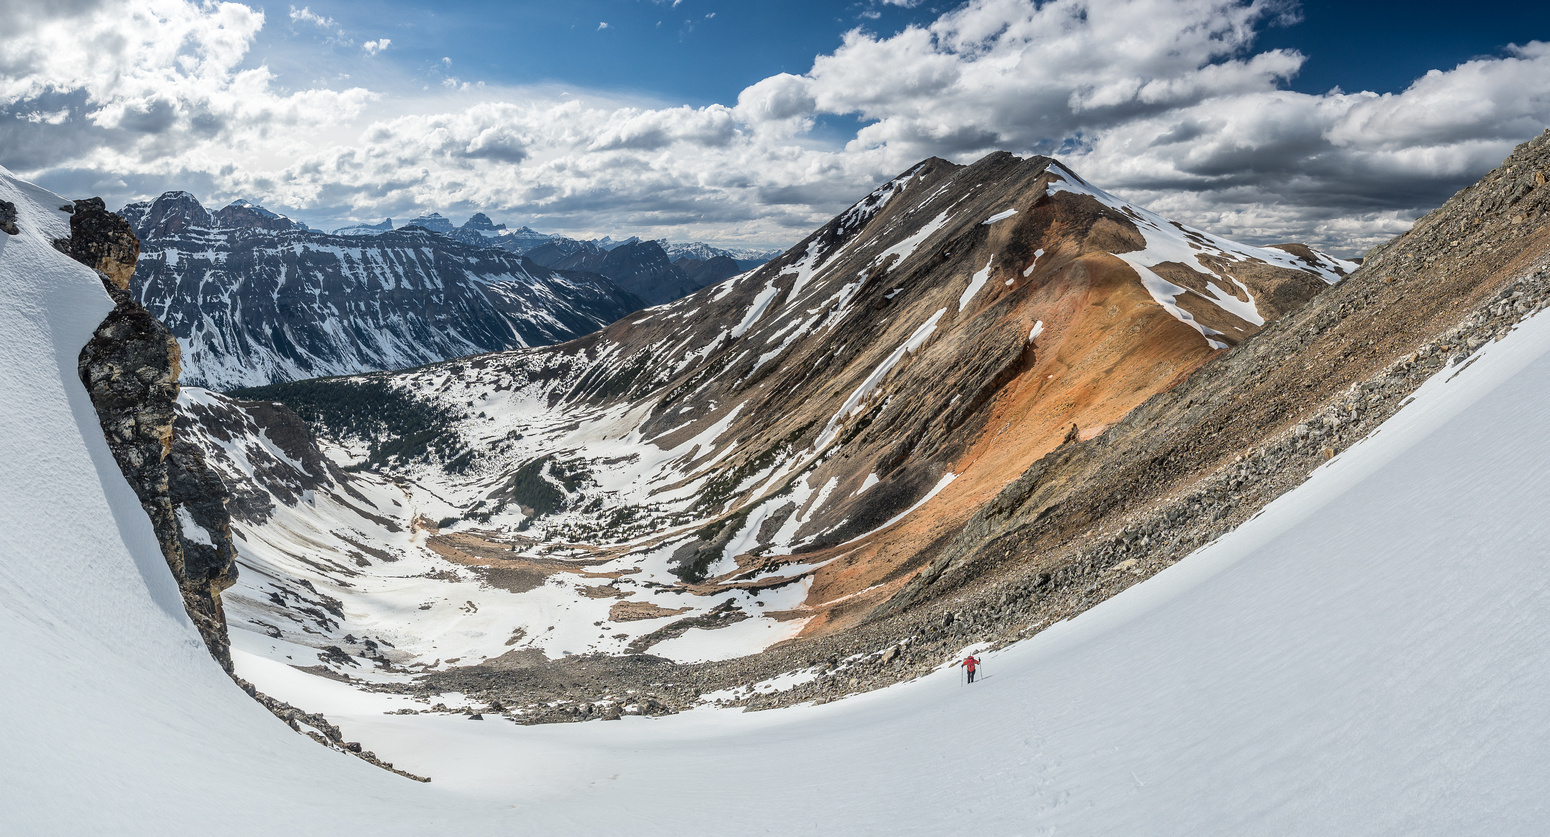 Looking back at Mike and Landslide Peak from the shallow couloir. Mount Hensley at left.